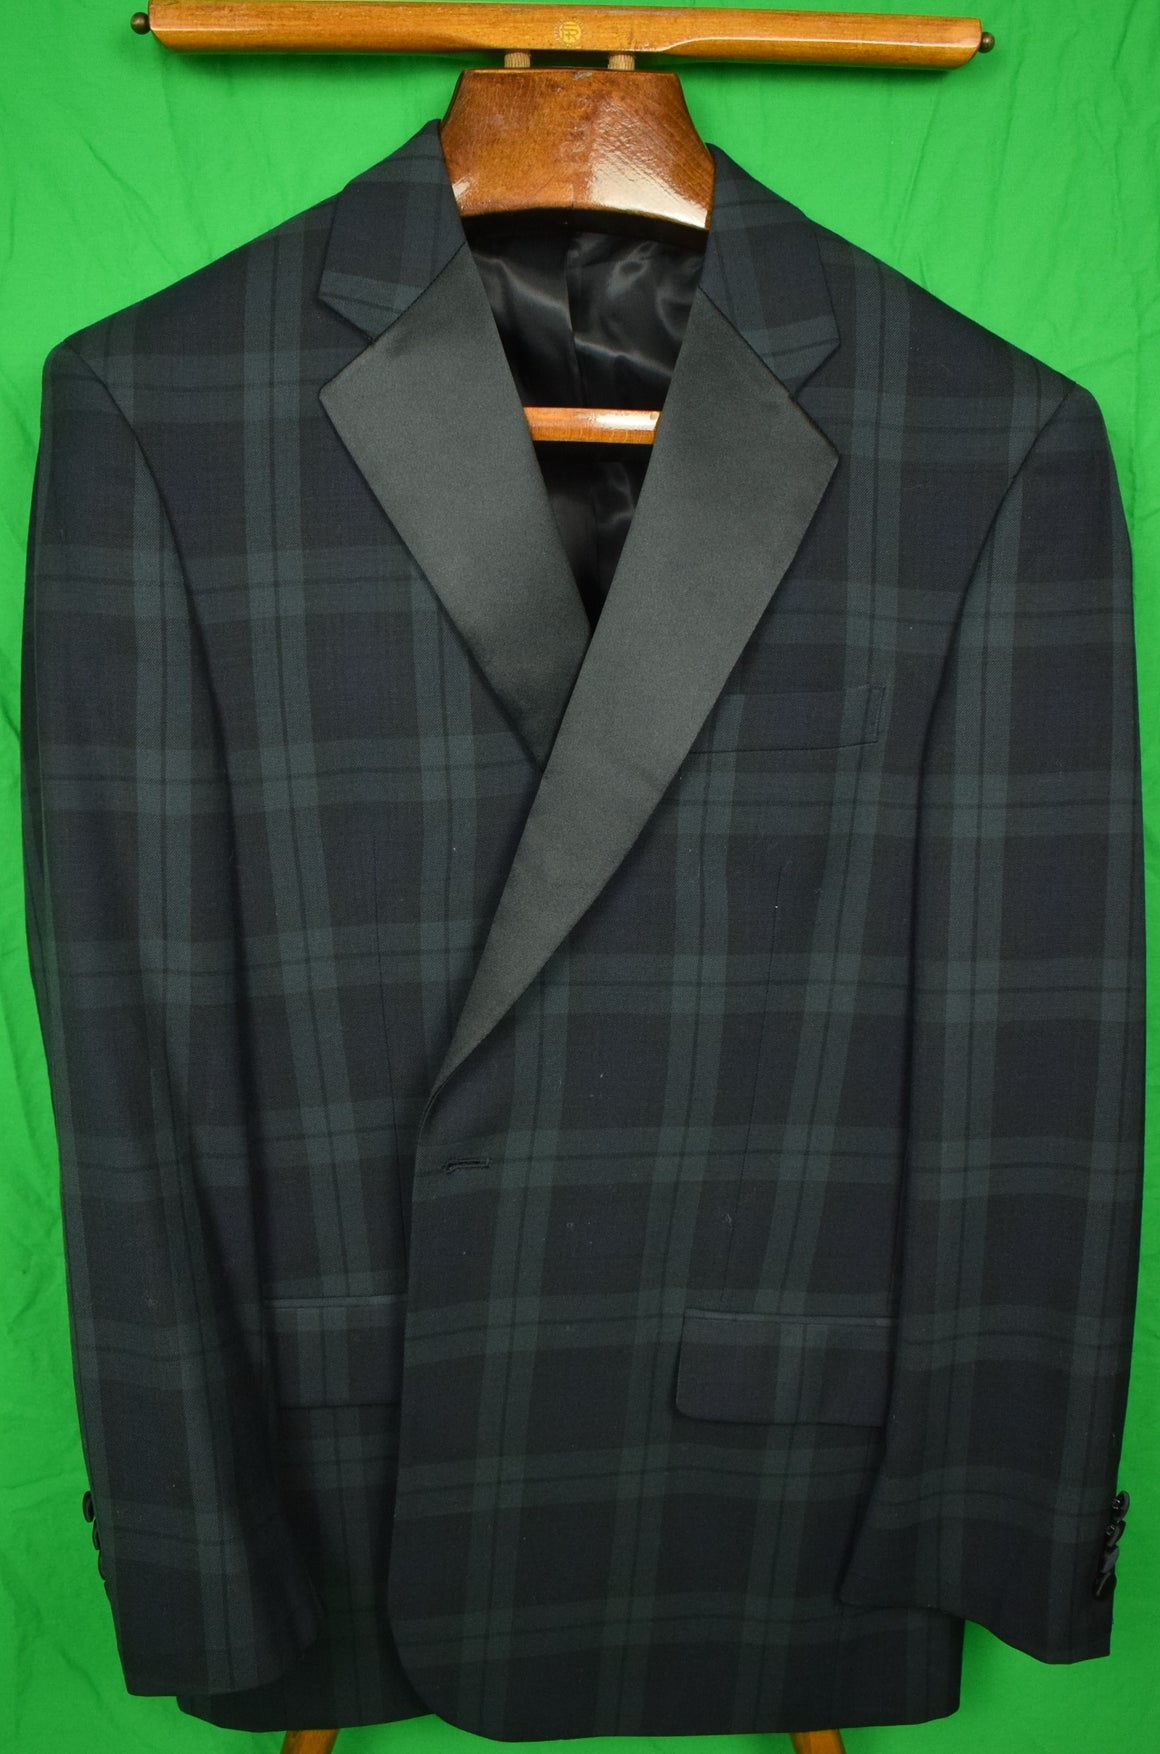 Jos A Bank Black Watch Tartan Dinner Jacket w/ Satin Notch Lapel Sz 43R